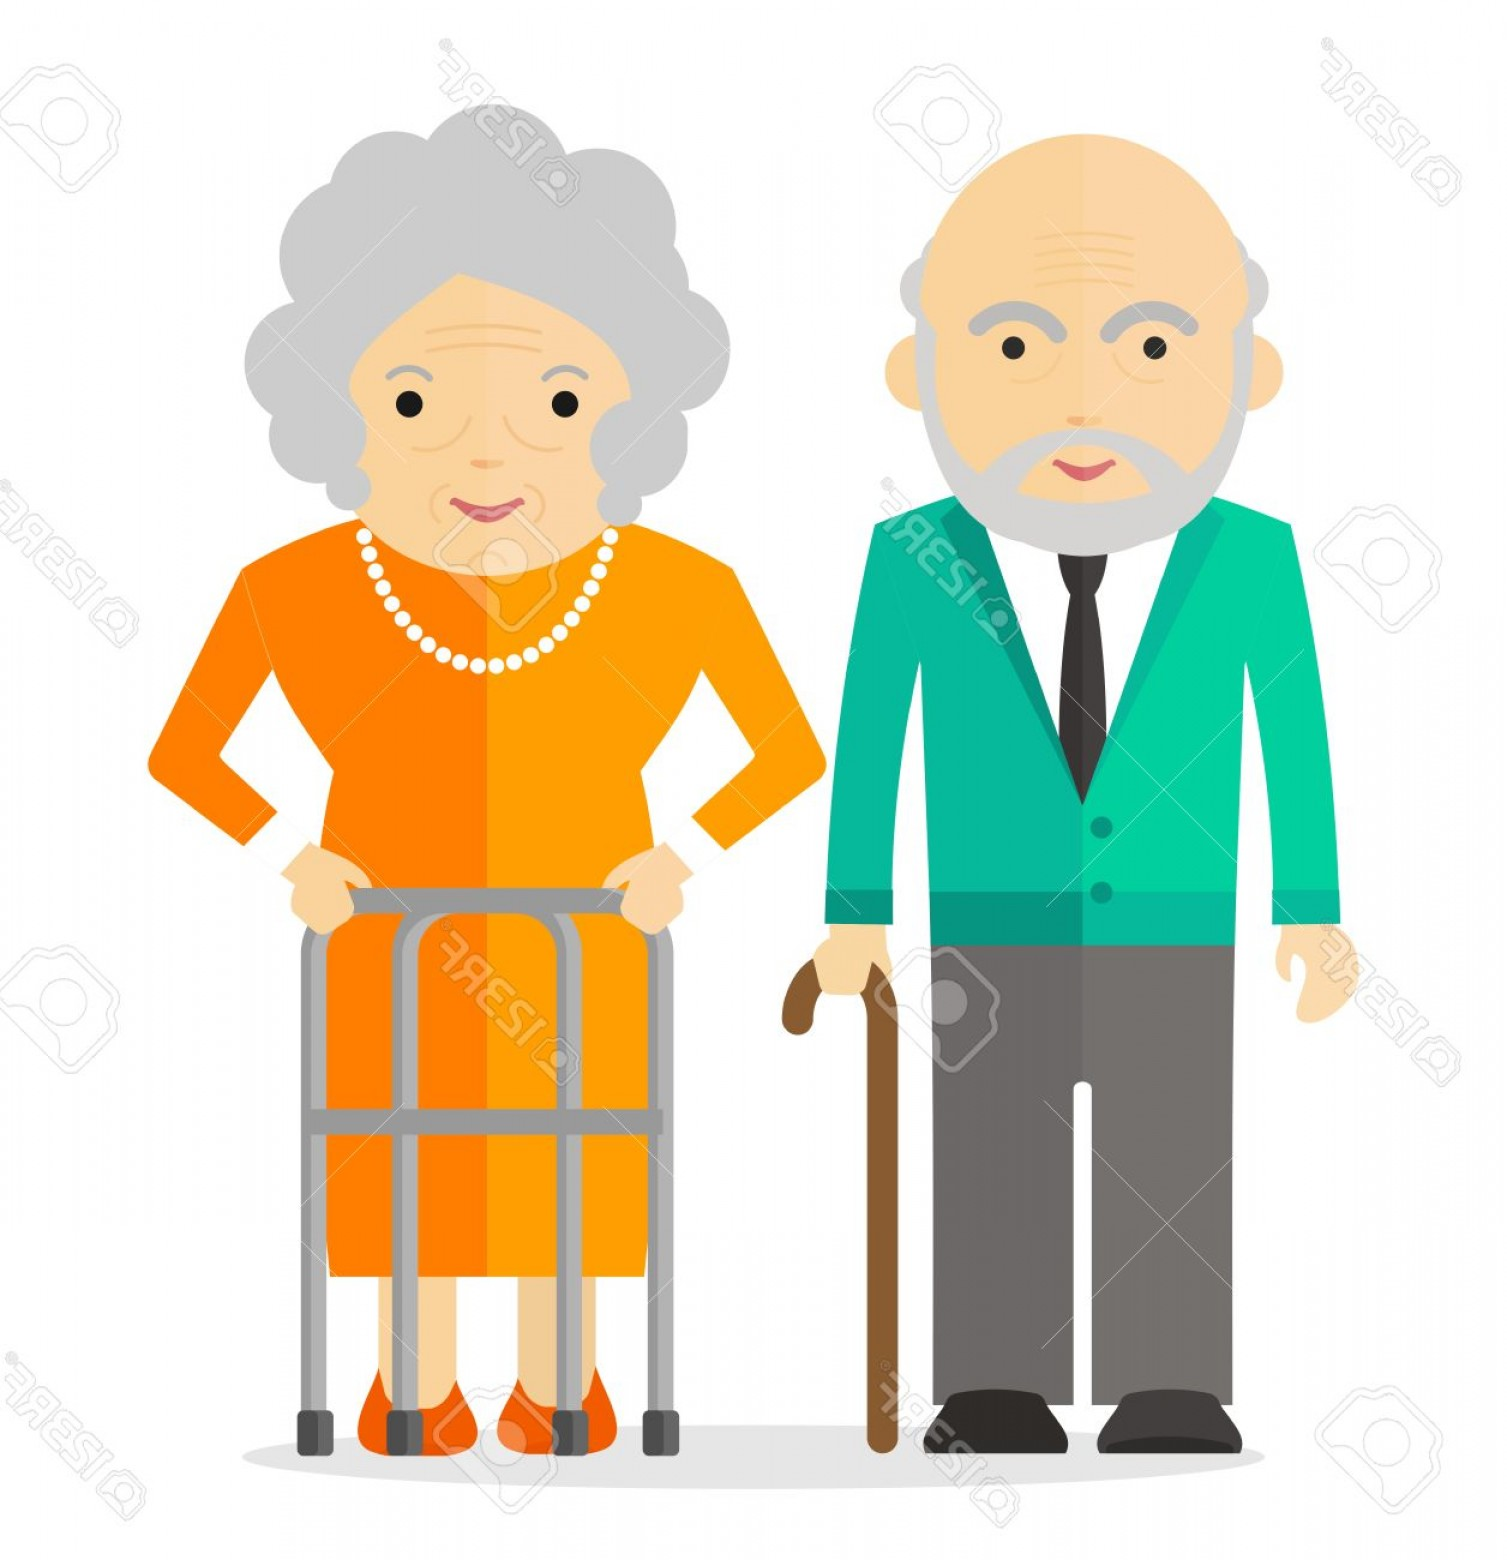 Happy Elderly Vector: Photostock Vector Happy Elderly Conceptual Image Of People Of Retirement Age Cartoon Flat Vector Illustration Objects